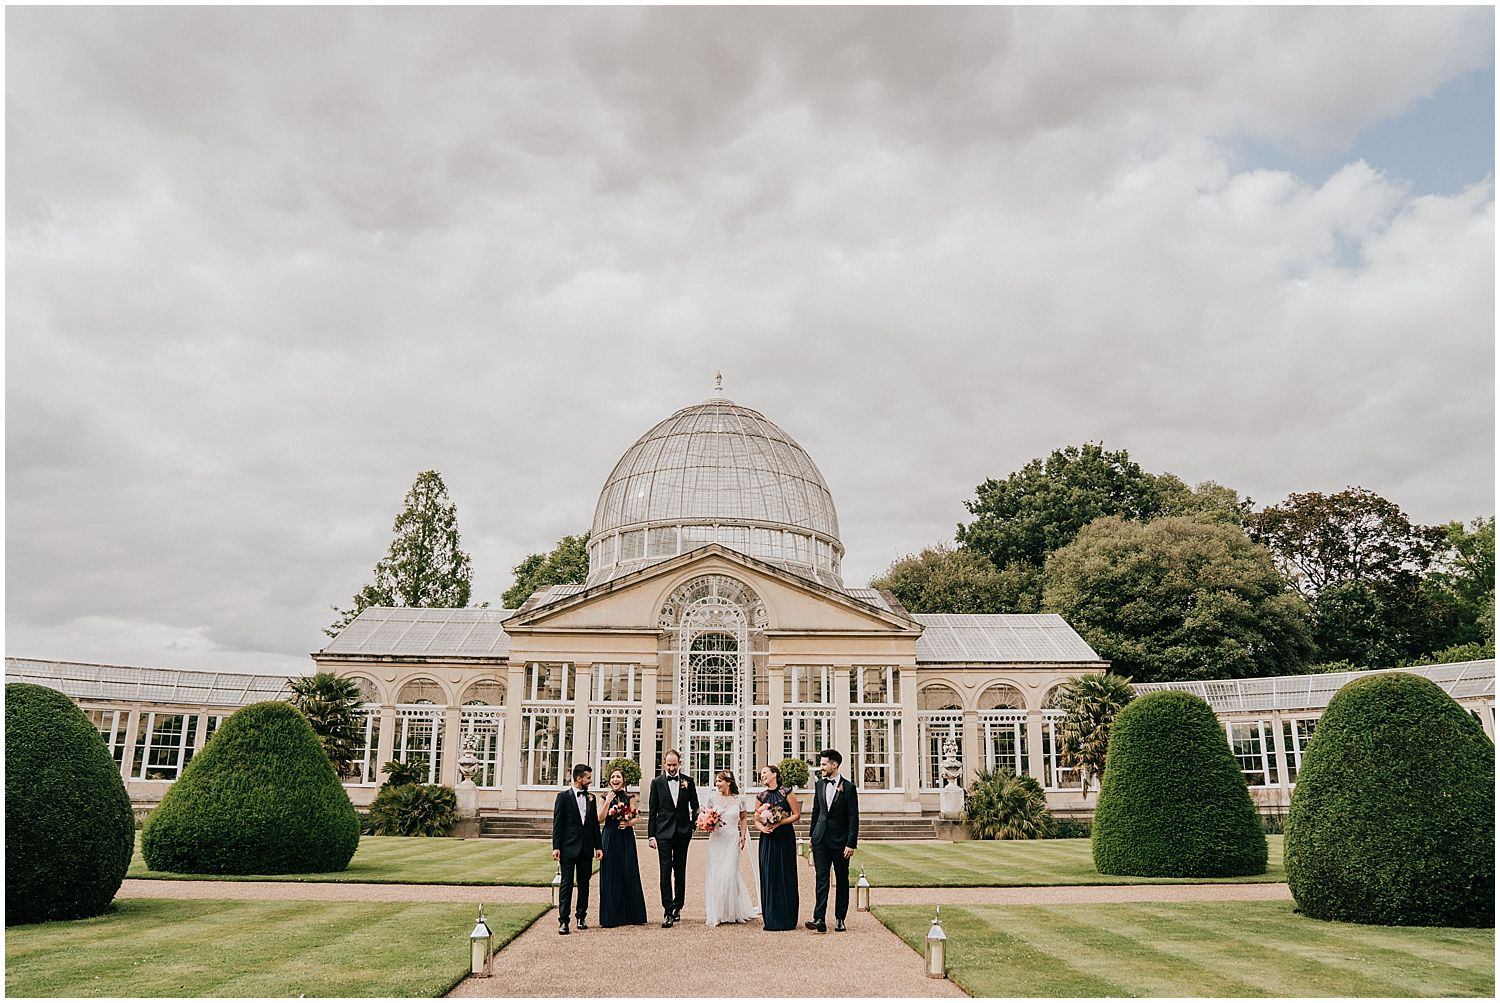 Syon House London wedding_0056.jpg